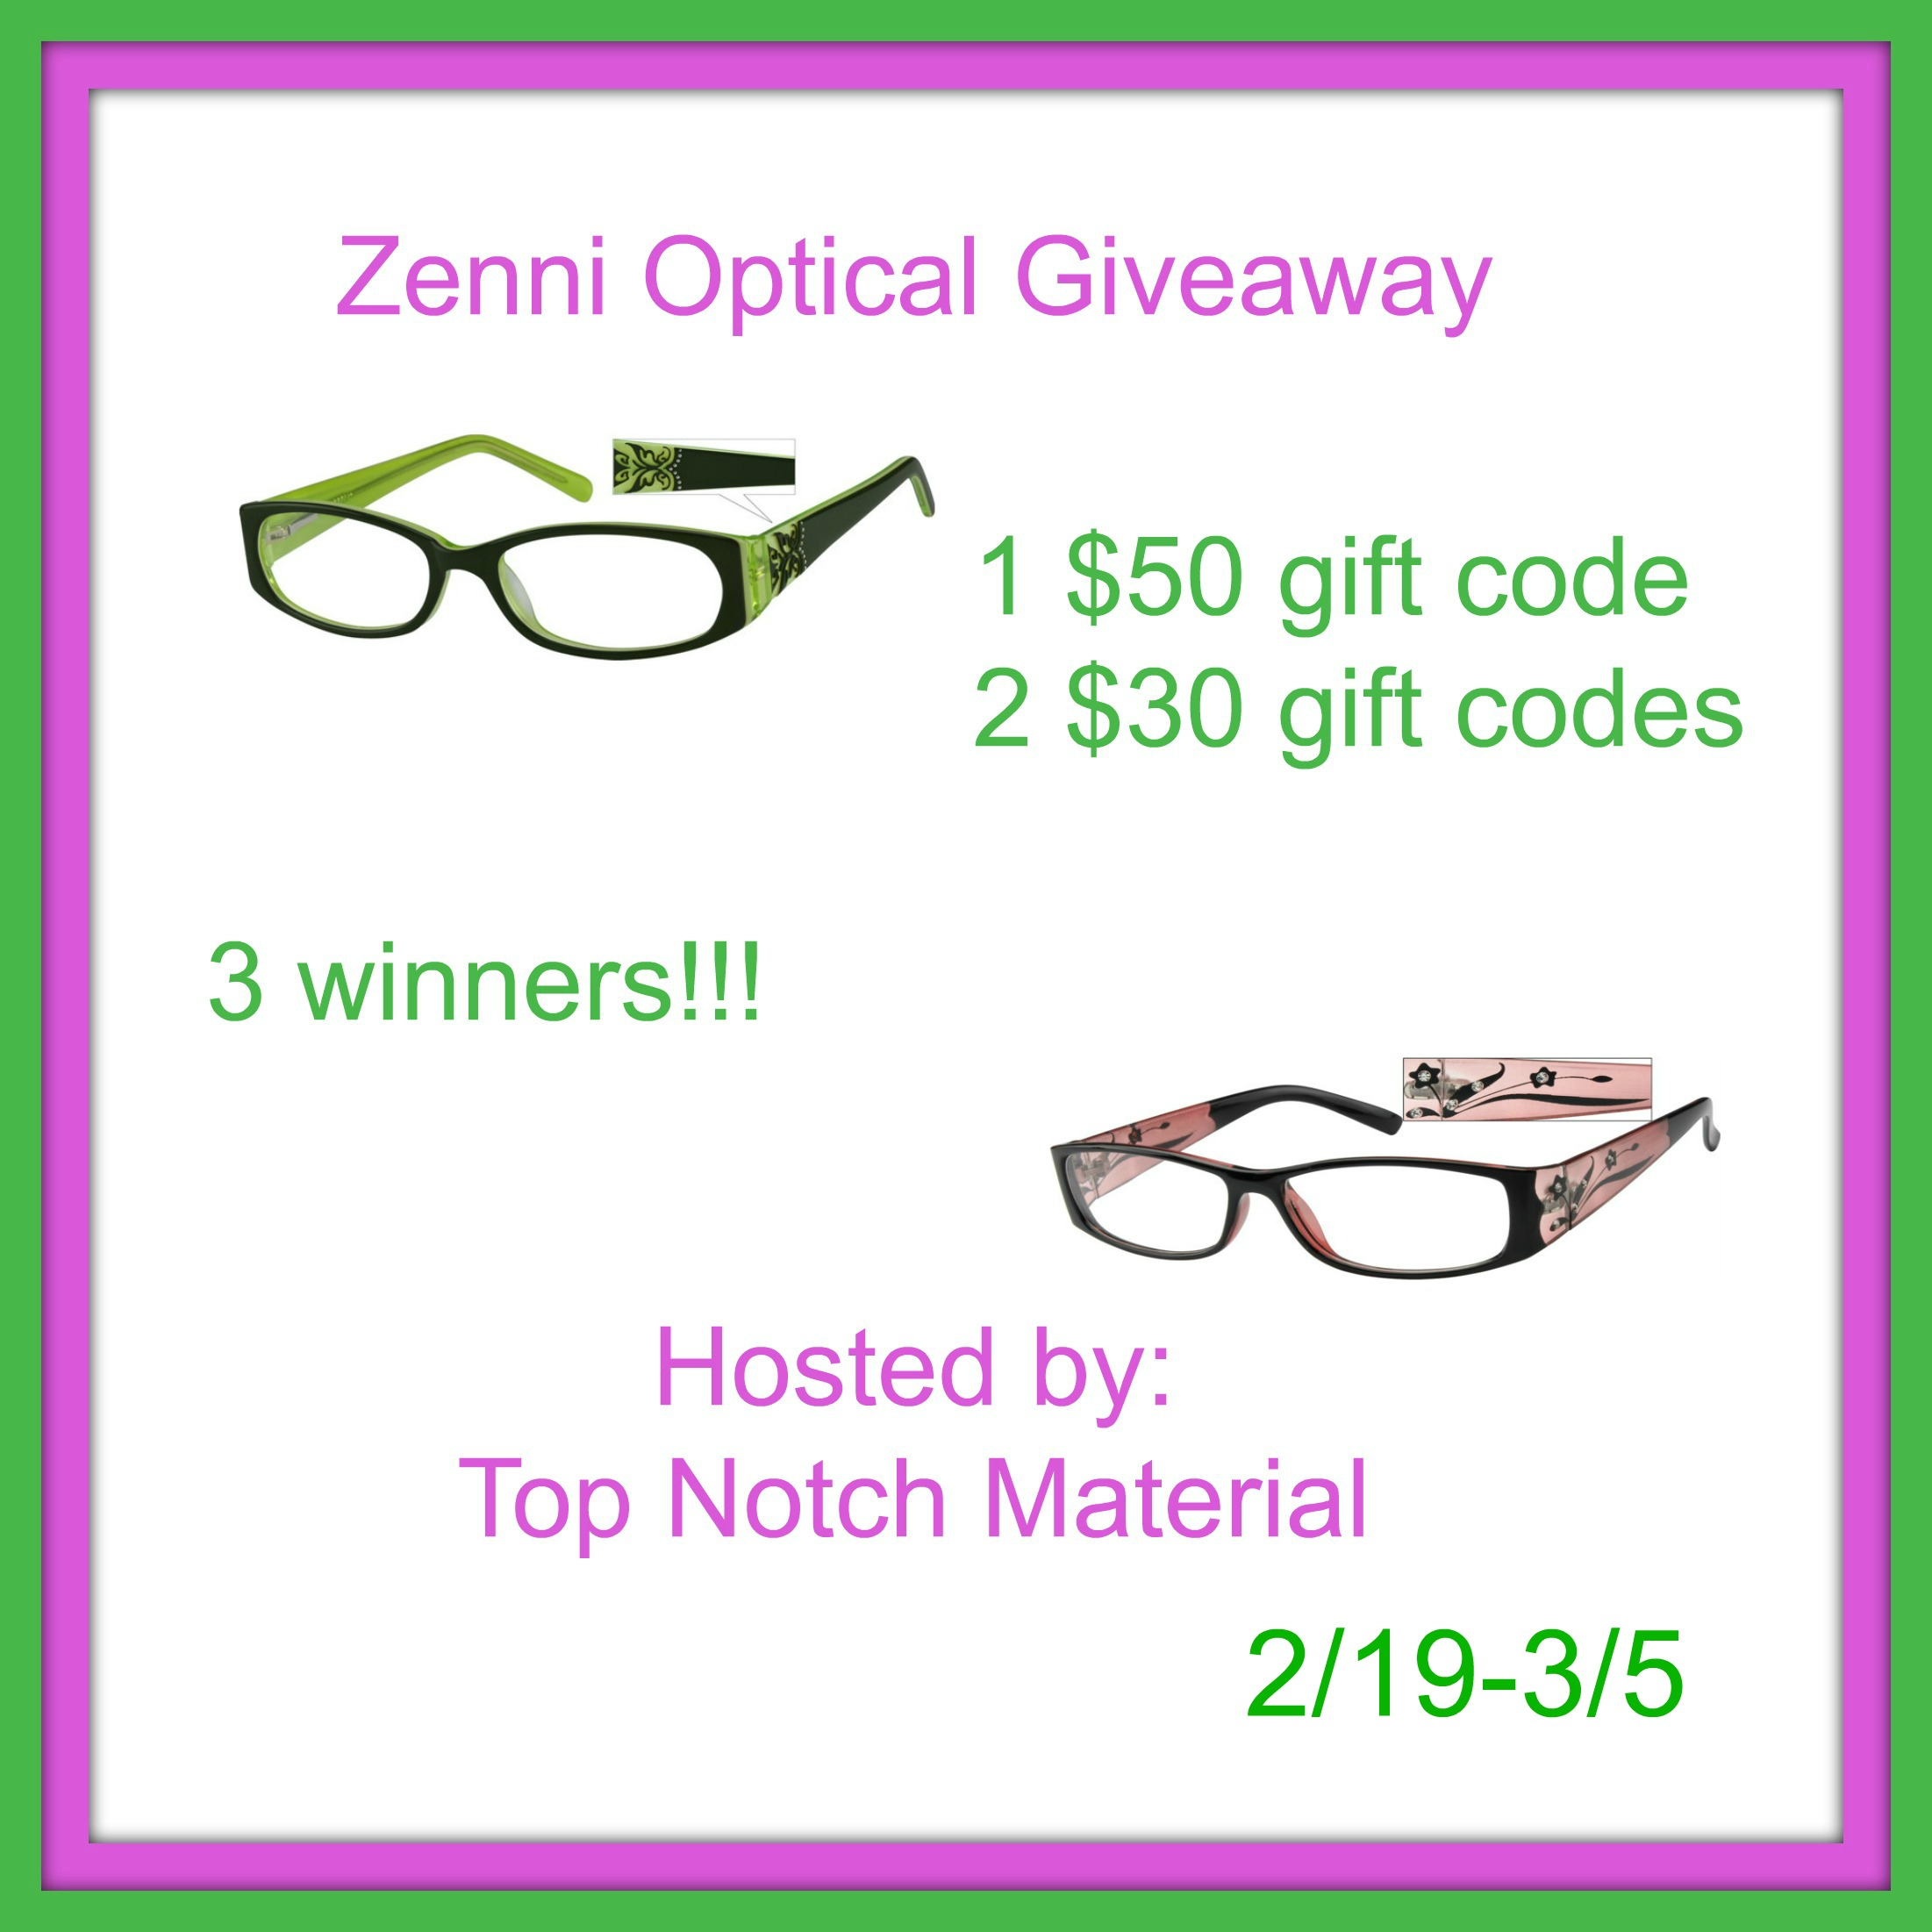 d09ffb65d04 Top Notch Material is hosting a great giveaway. 3 winners. 2 will receive a   30 gift code and 1 will receive a  50 gift code to Zenni Optical. You don t